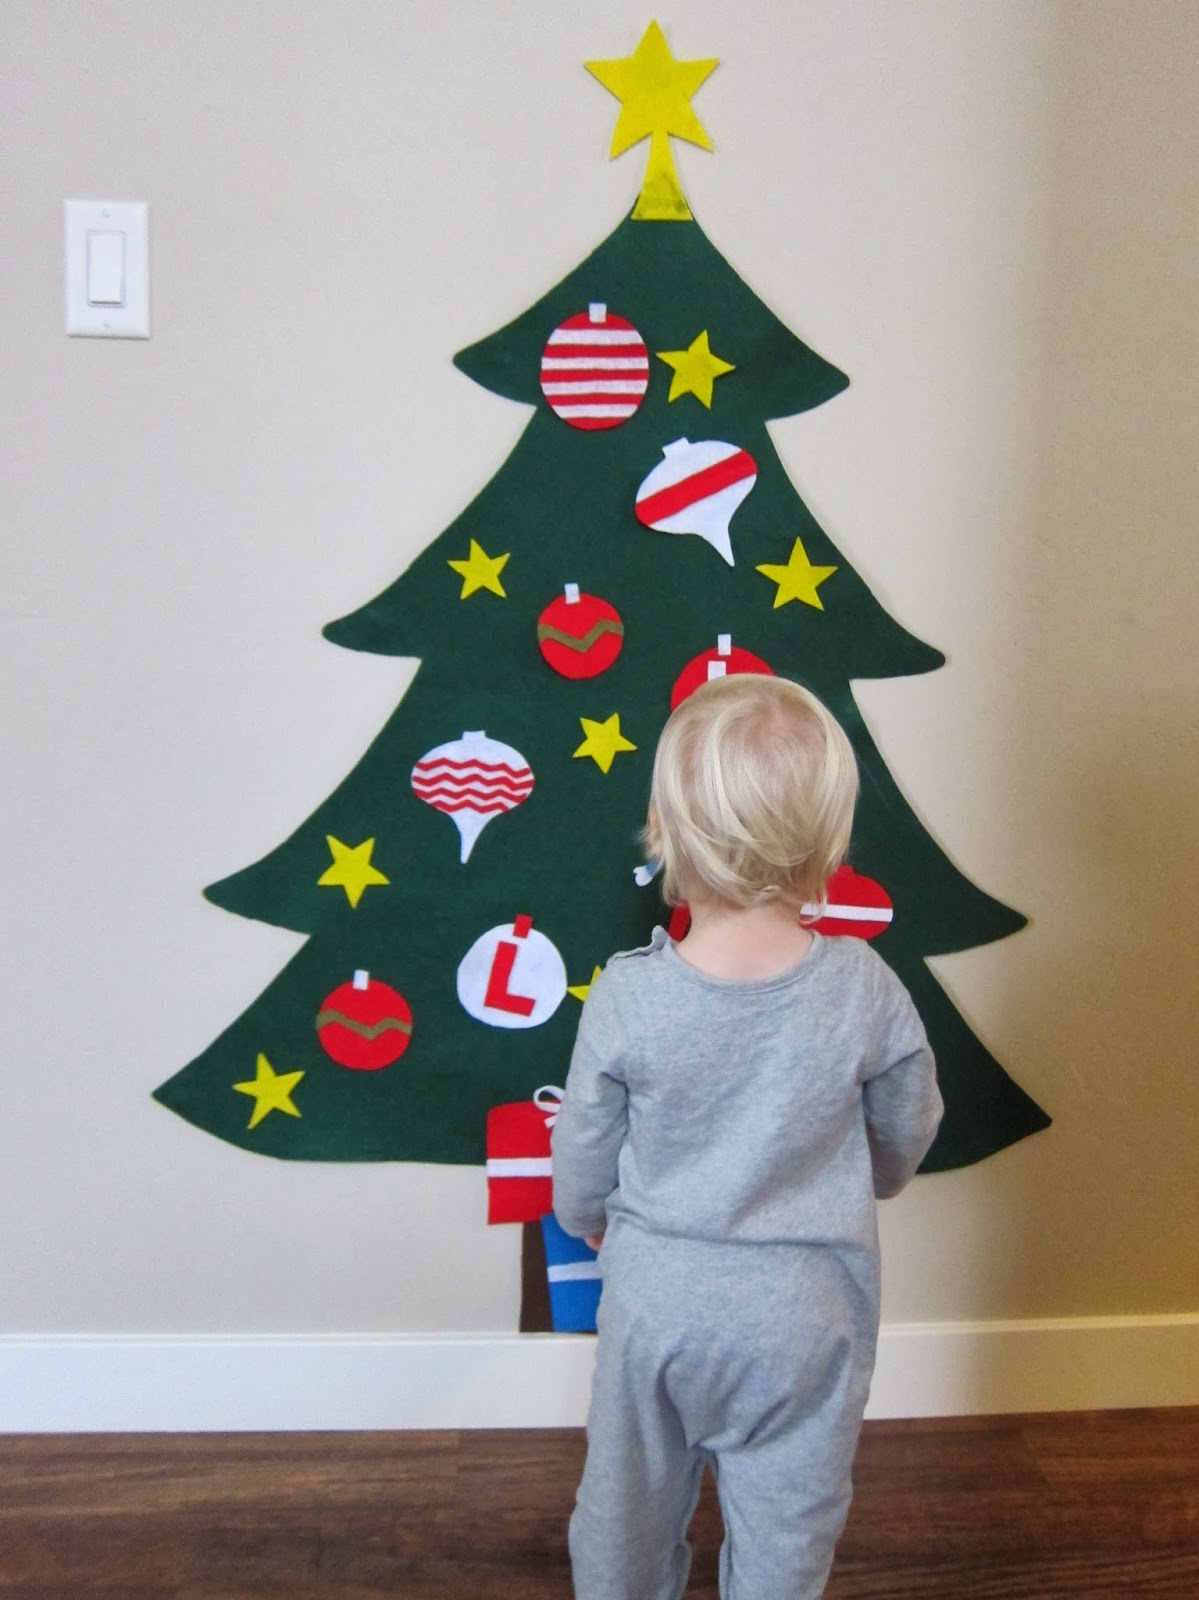 How To Hang Christmas Decorations Without Ruining Walls 95